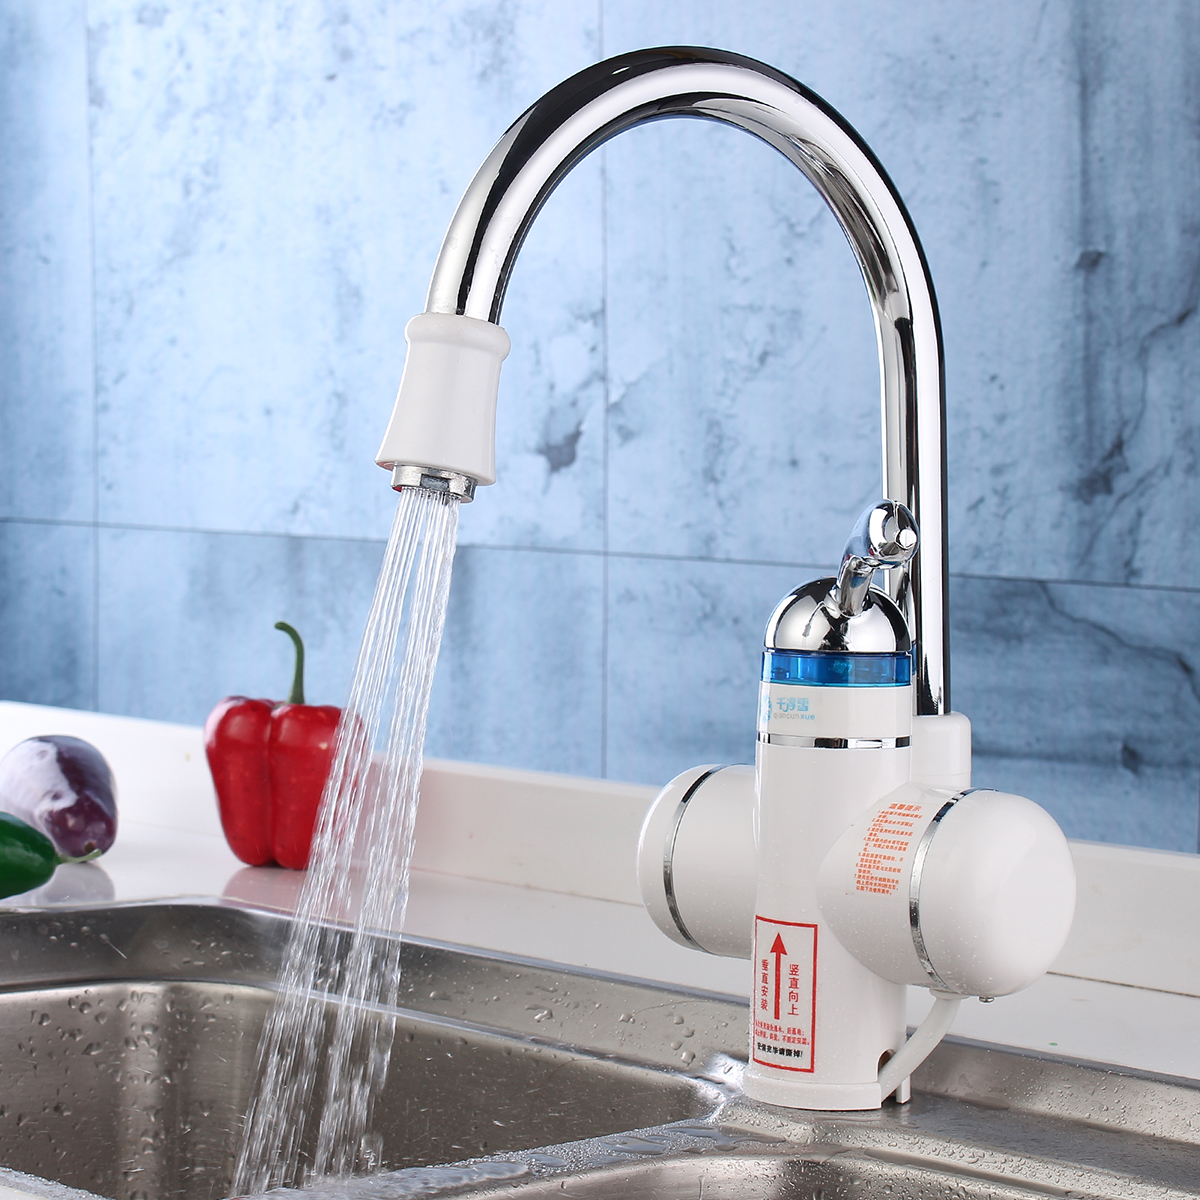 Image Result For Voyager Water Heater